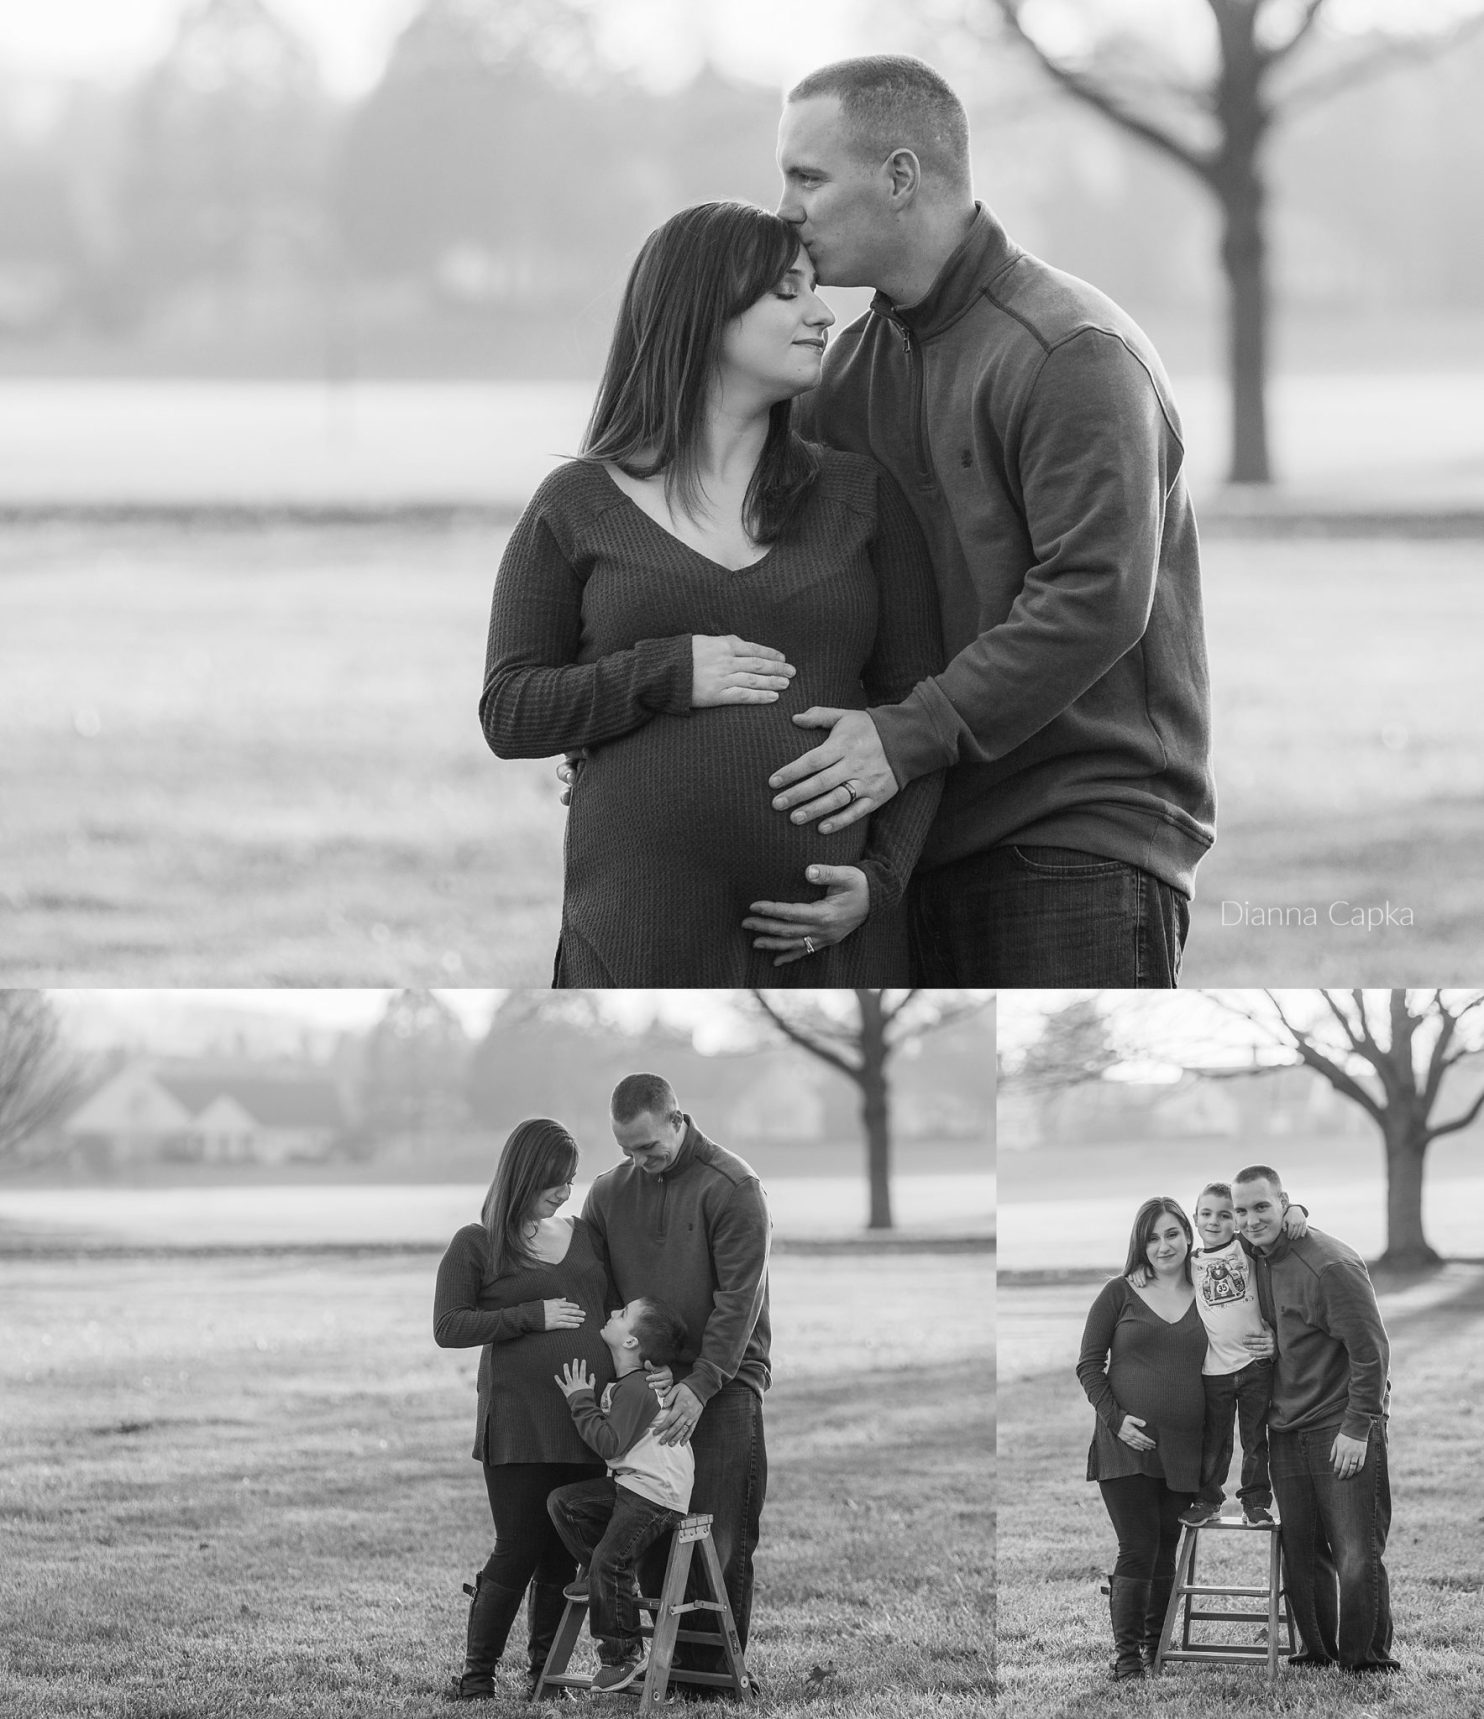 December maternity family photo session at The Highlands of Wyomissing